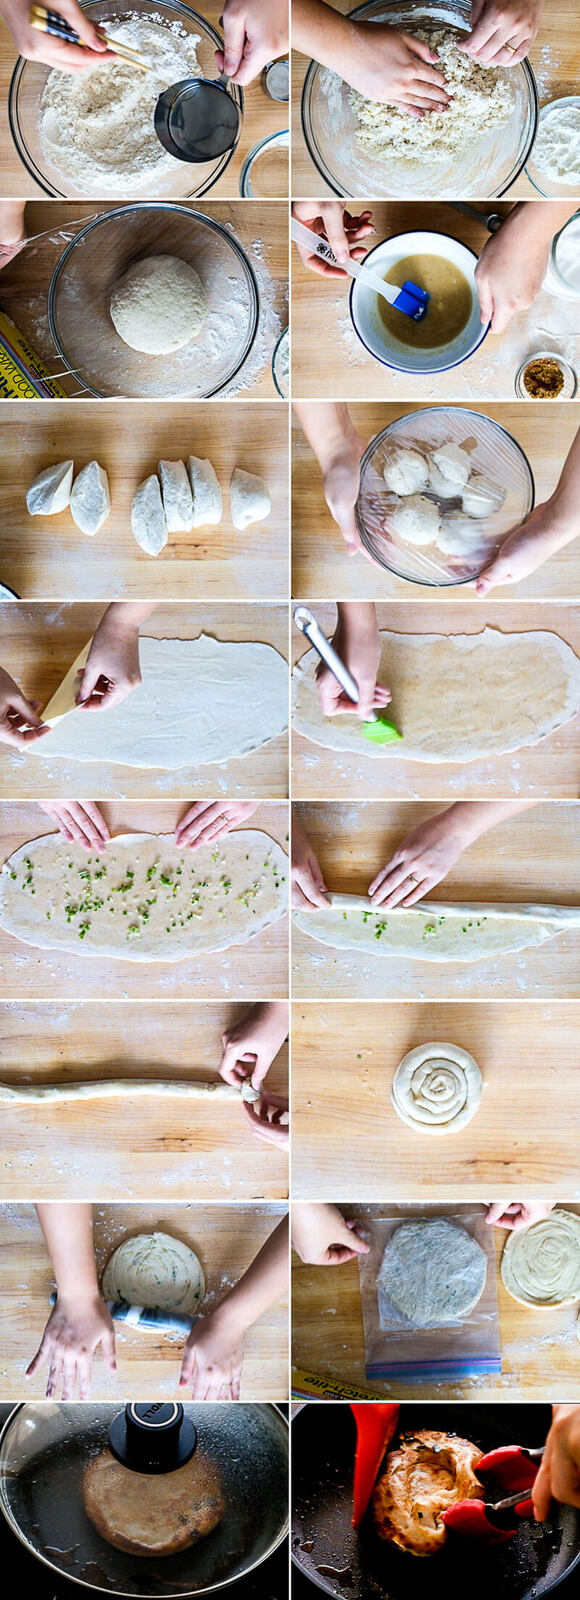 Chinese Scallion Pancakes Cooking Process